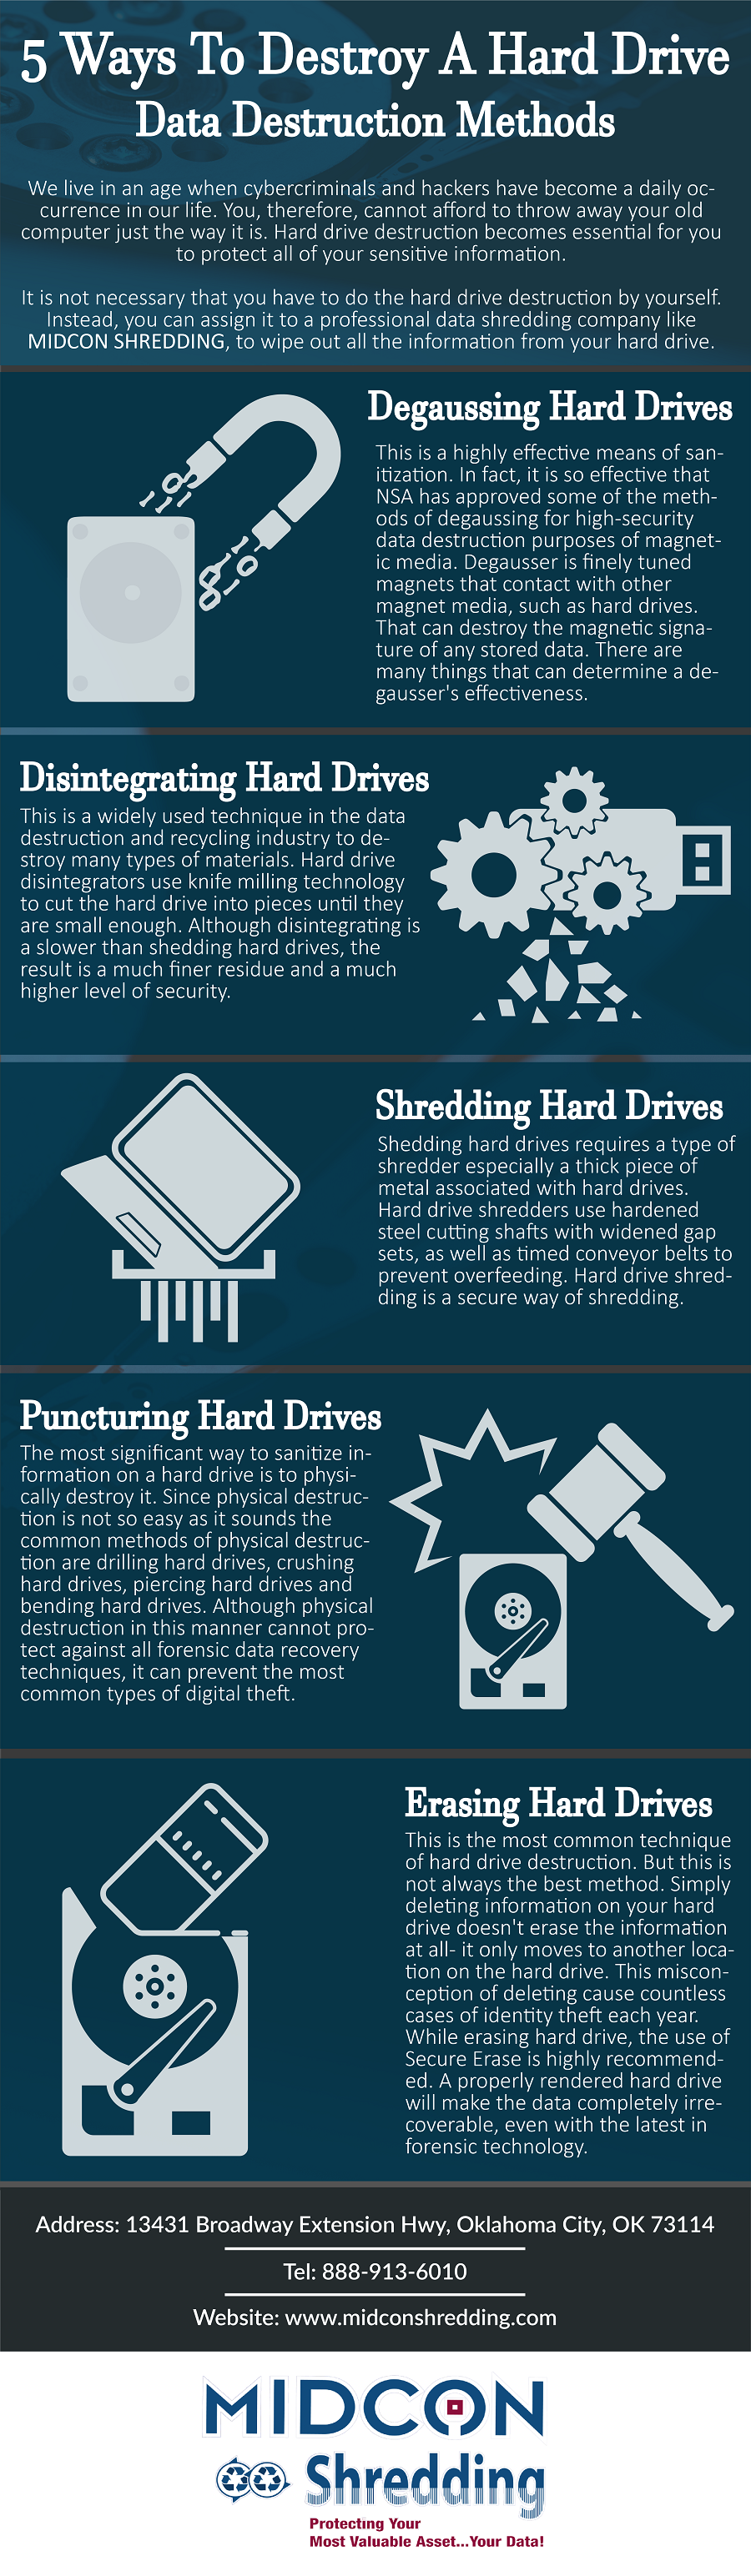 5 Ways To Destroy A Hard Drive.png